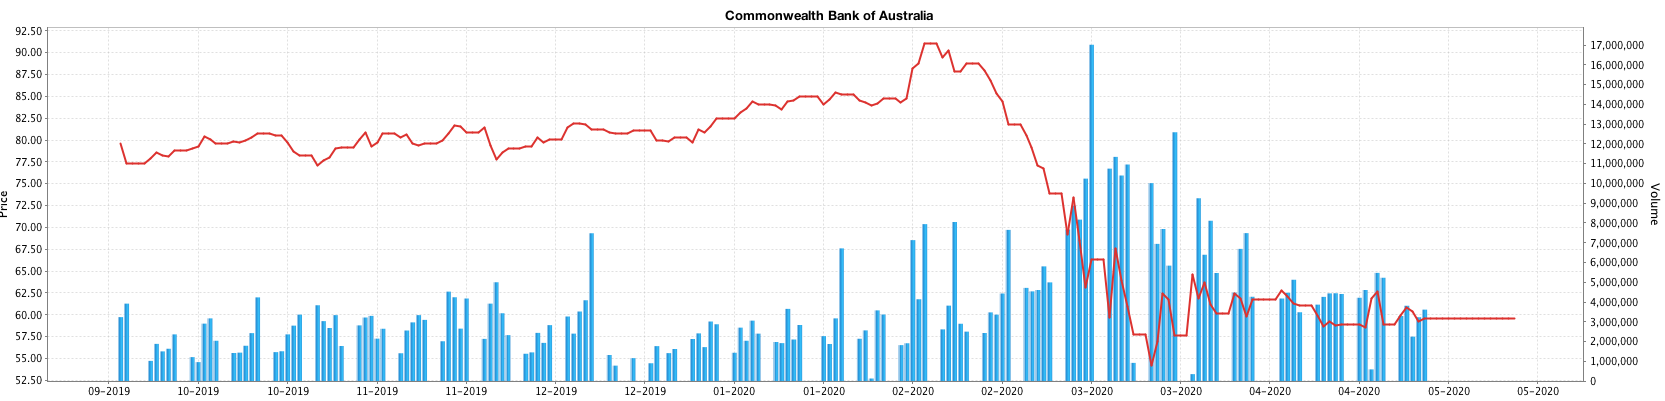 Cba_prices_graph